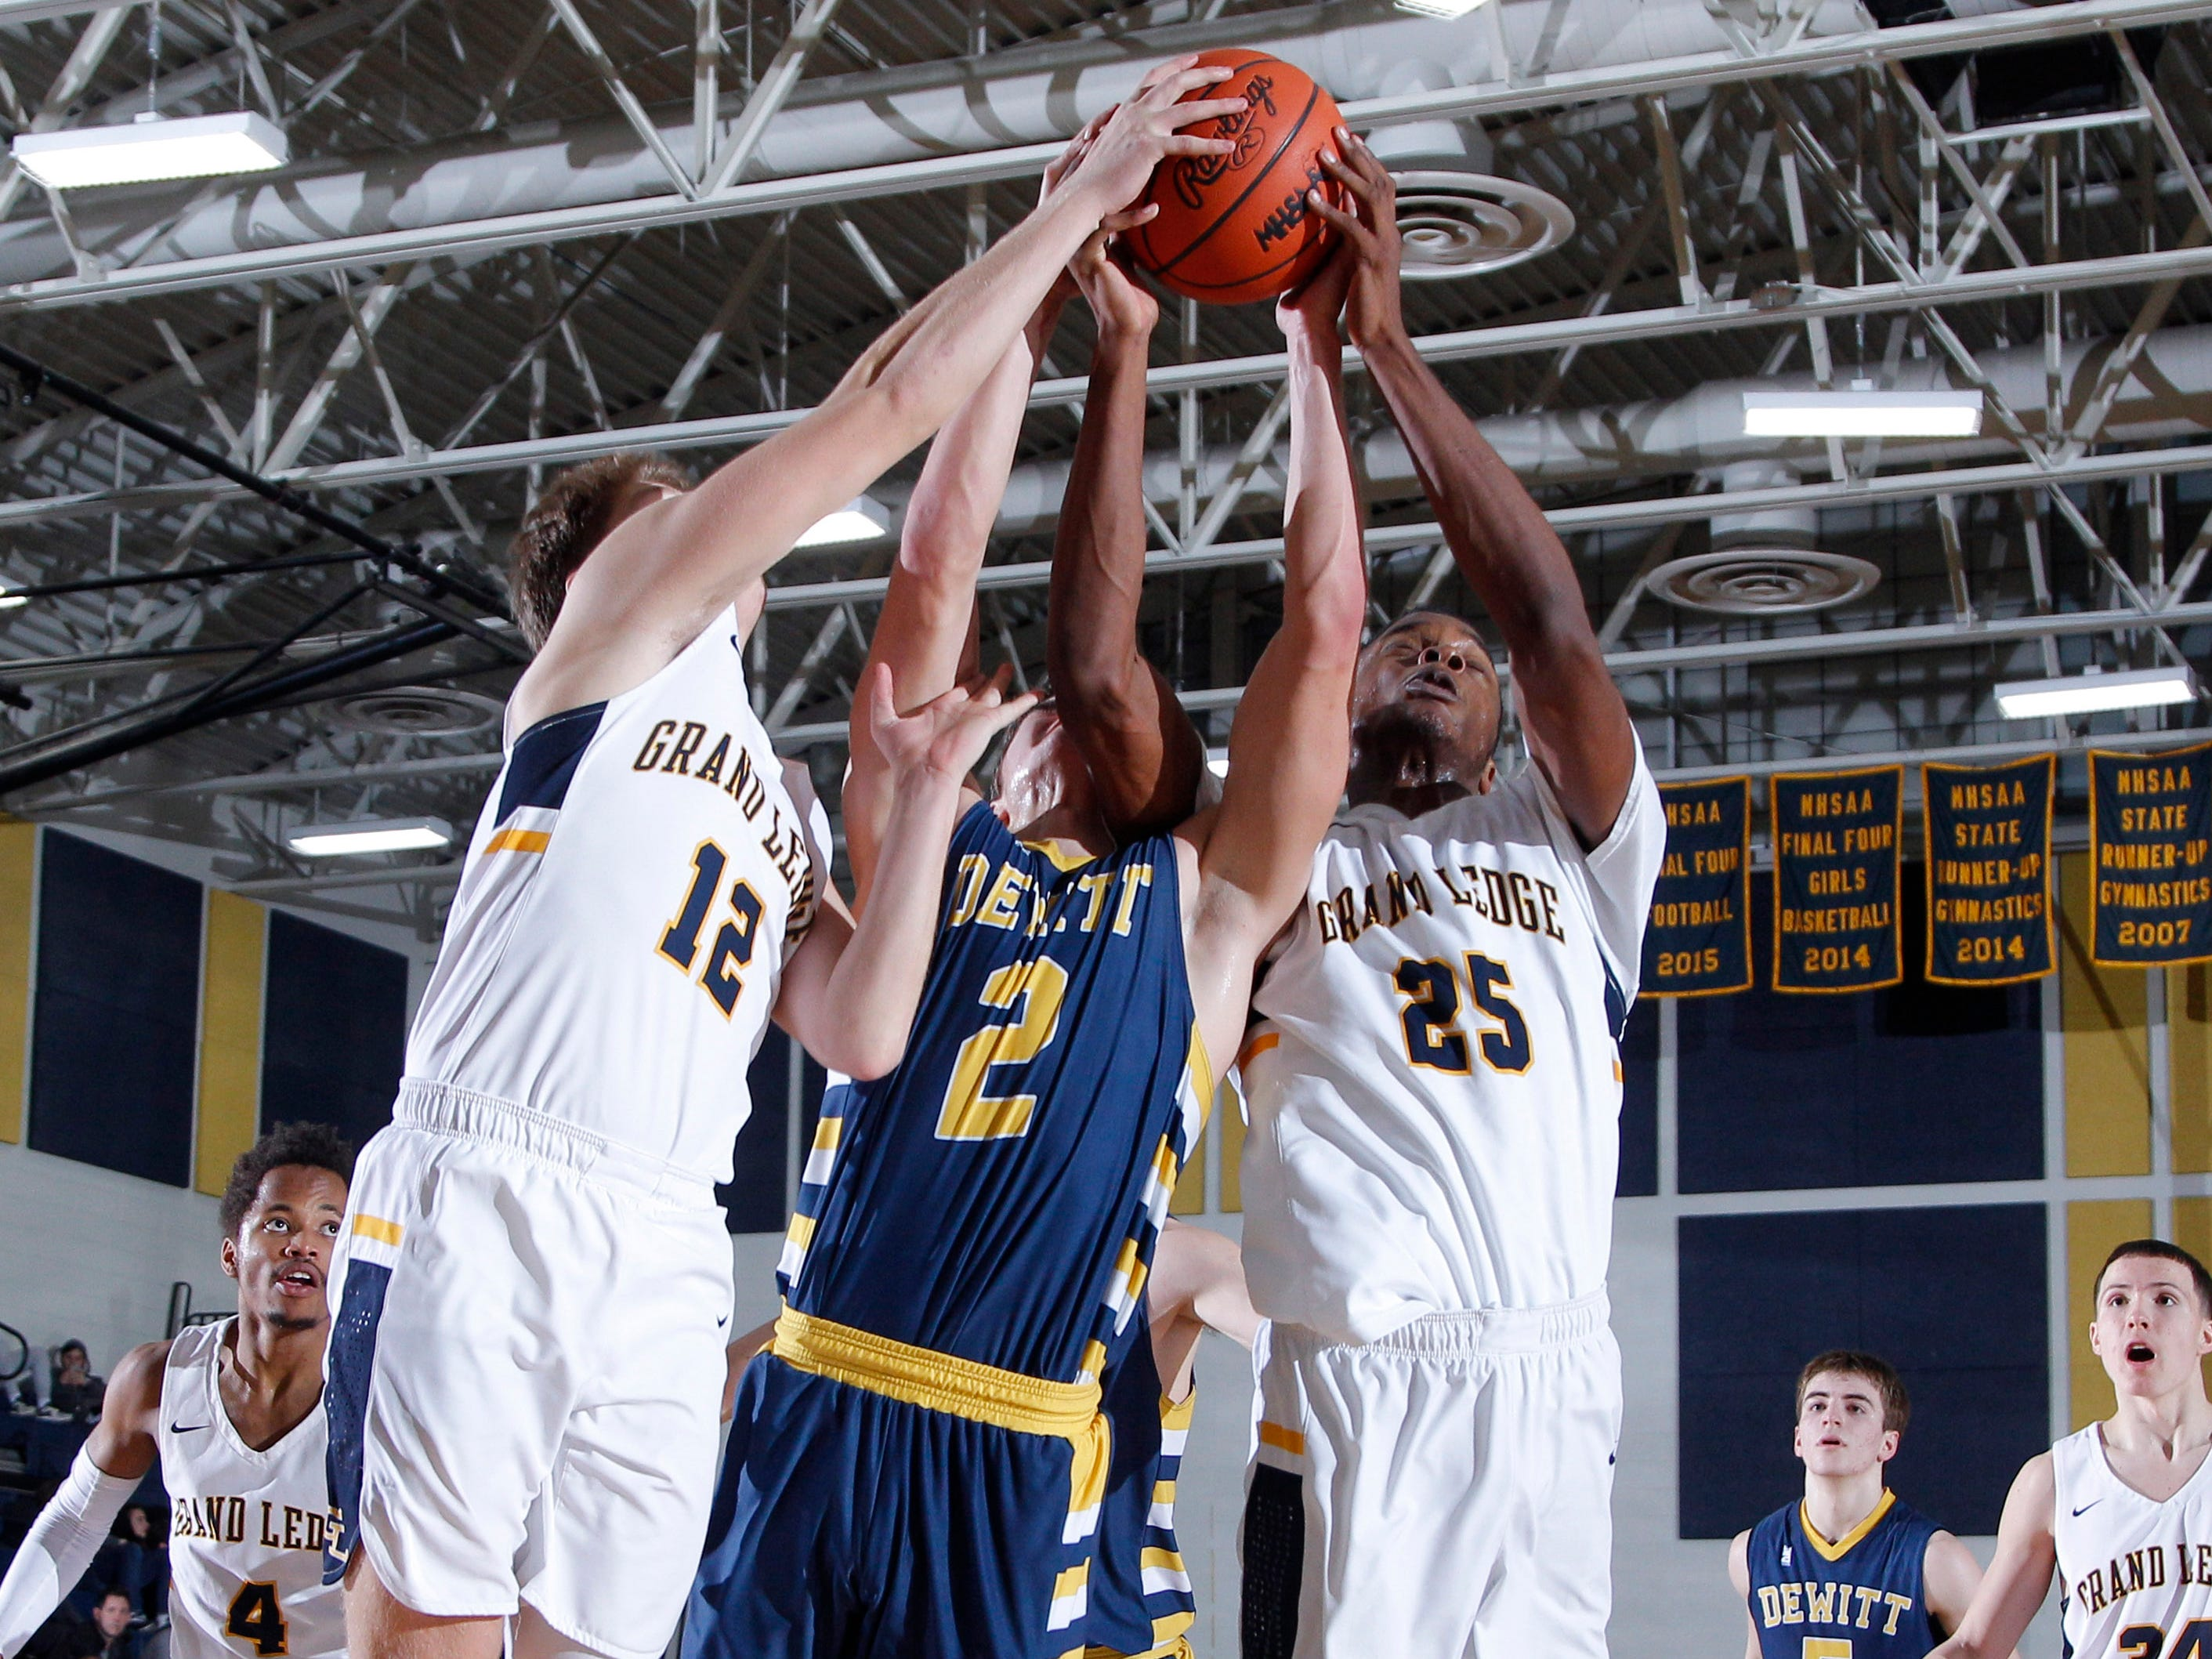 Grand Ledge's Javel Lewis, right, and Trever Rogers, left, and DeWitt's Isaac Hungerford vie for a rebound, Tuesday, Jan. 15, 2019, in Grand Ledge, Mich.